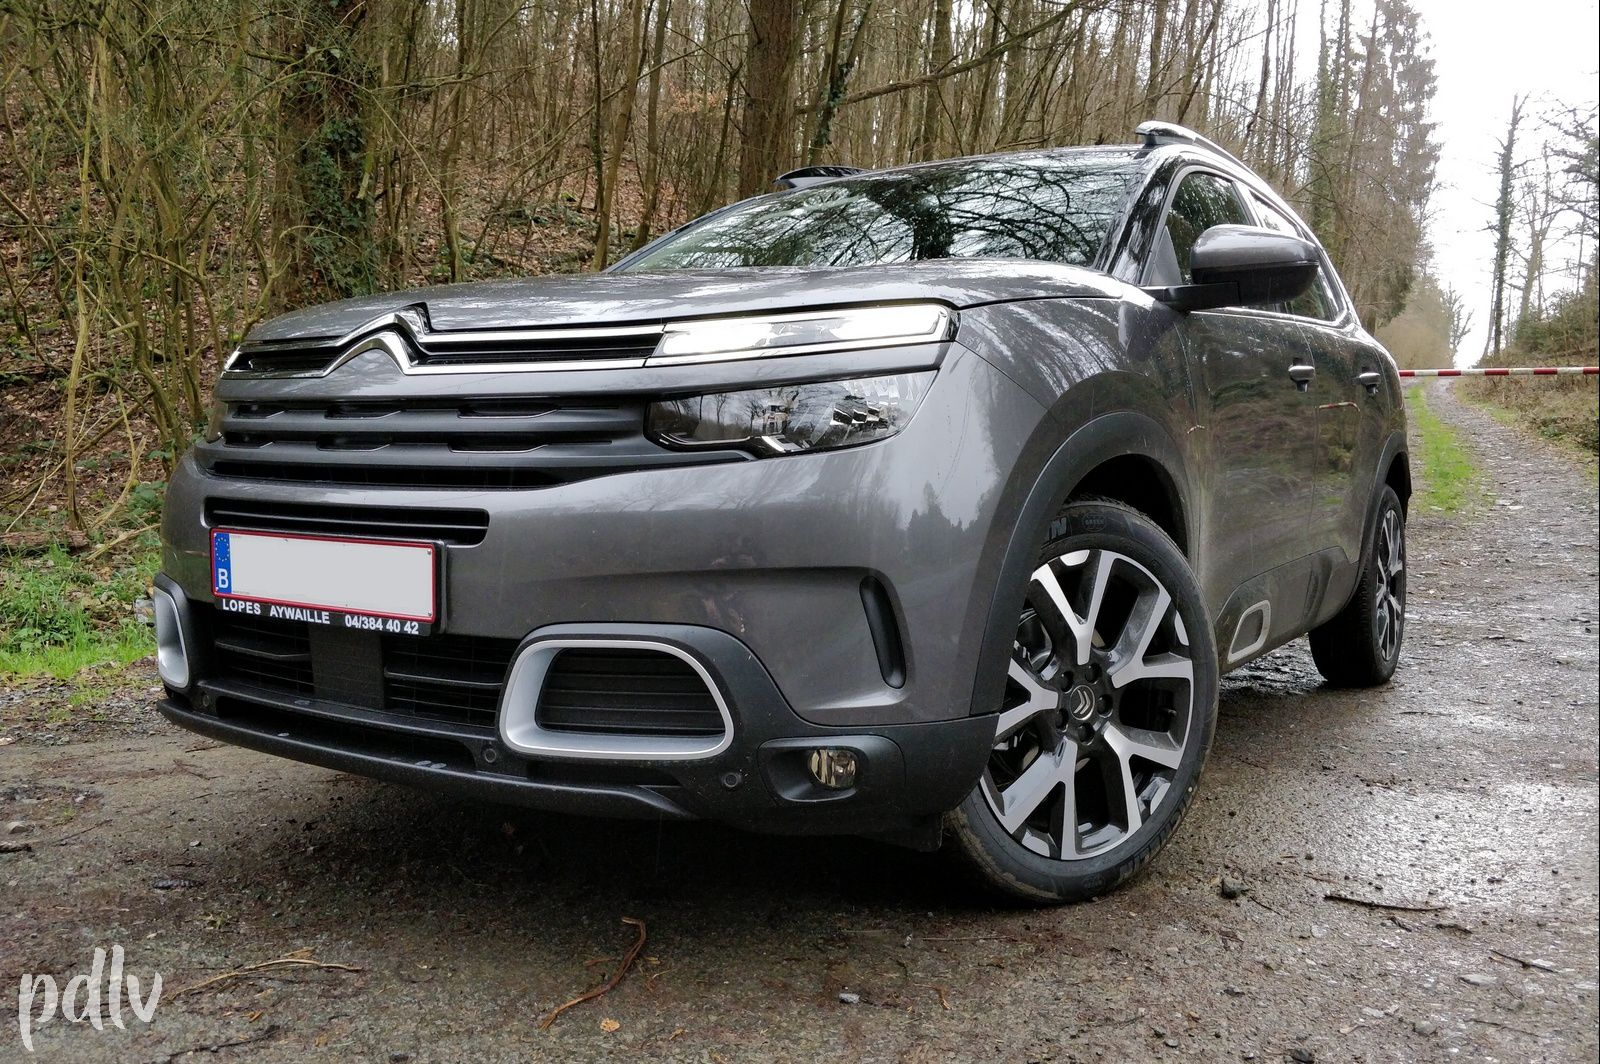 CITROËN C5 AIRCROSS 1.5 BLUEHDI 130 EAT8 : Prétendant ...